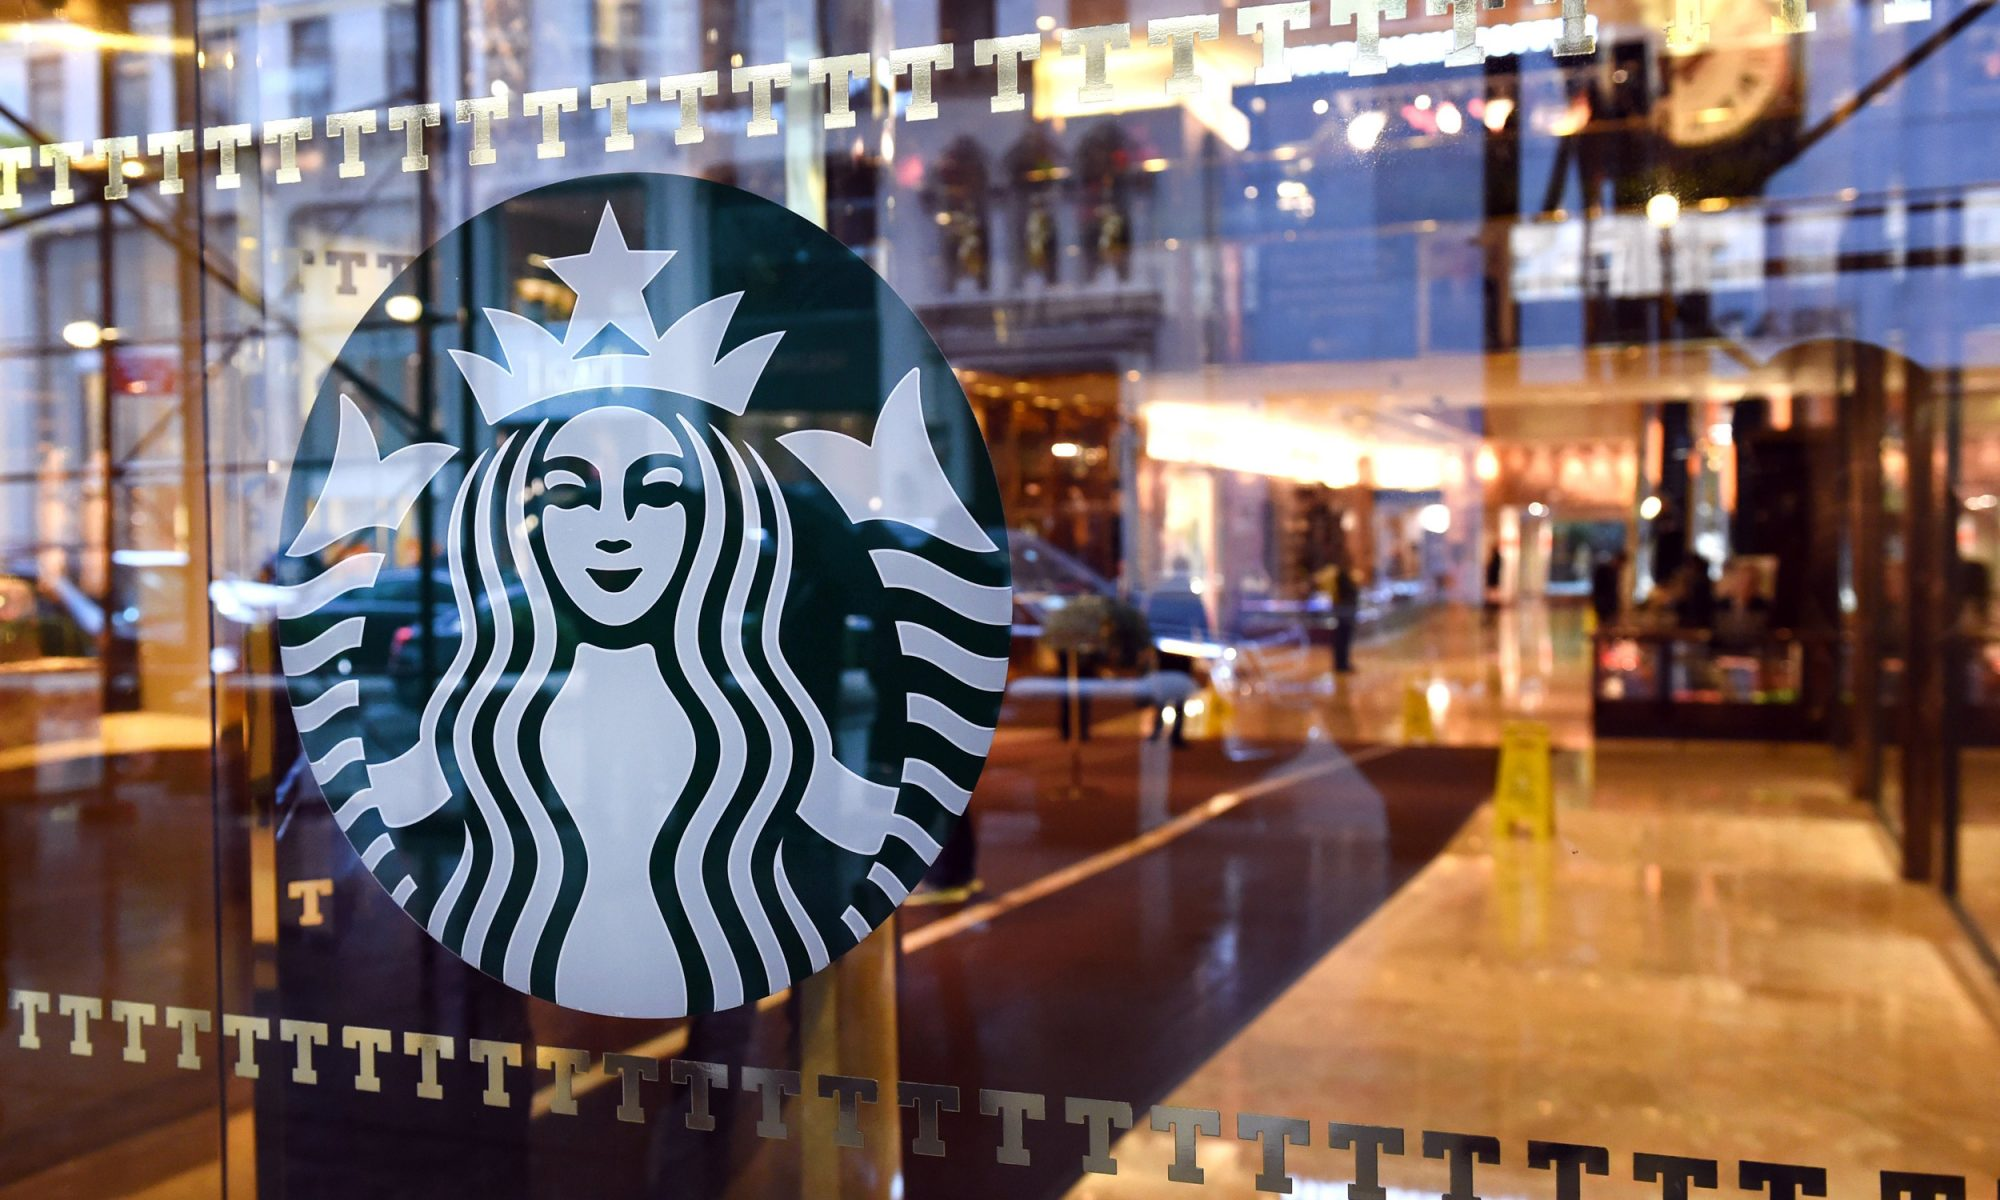 EC: CEO's Letter to Starbucks Employees Calls for Post-Election Civility